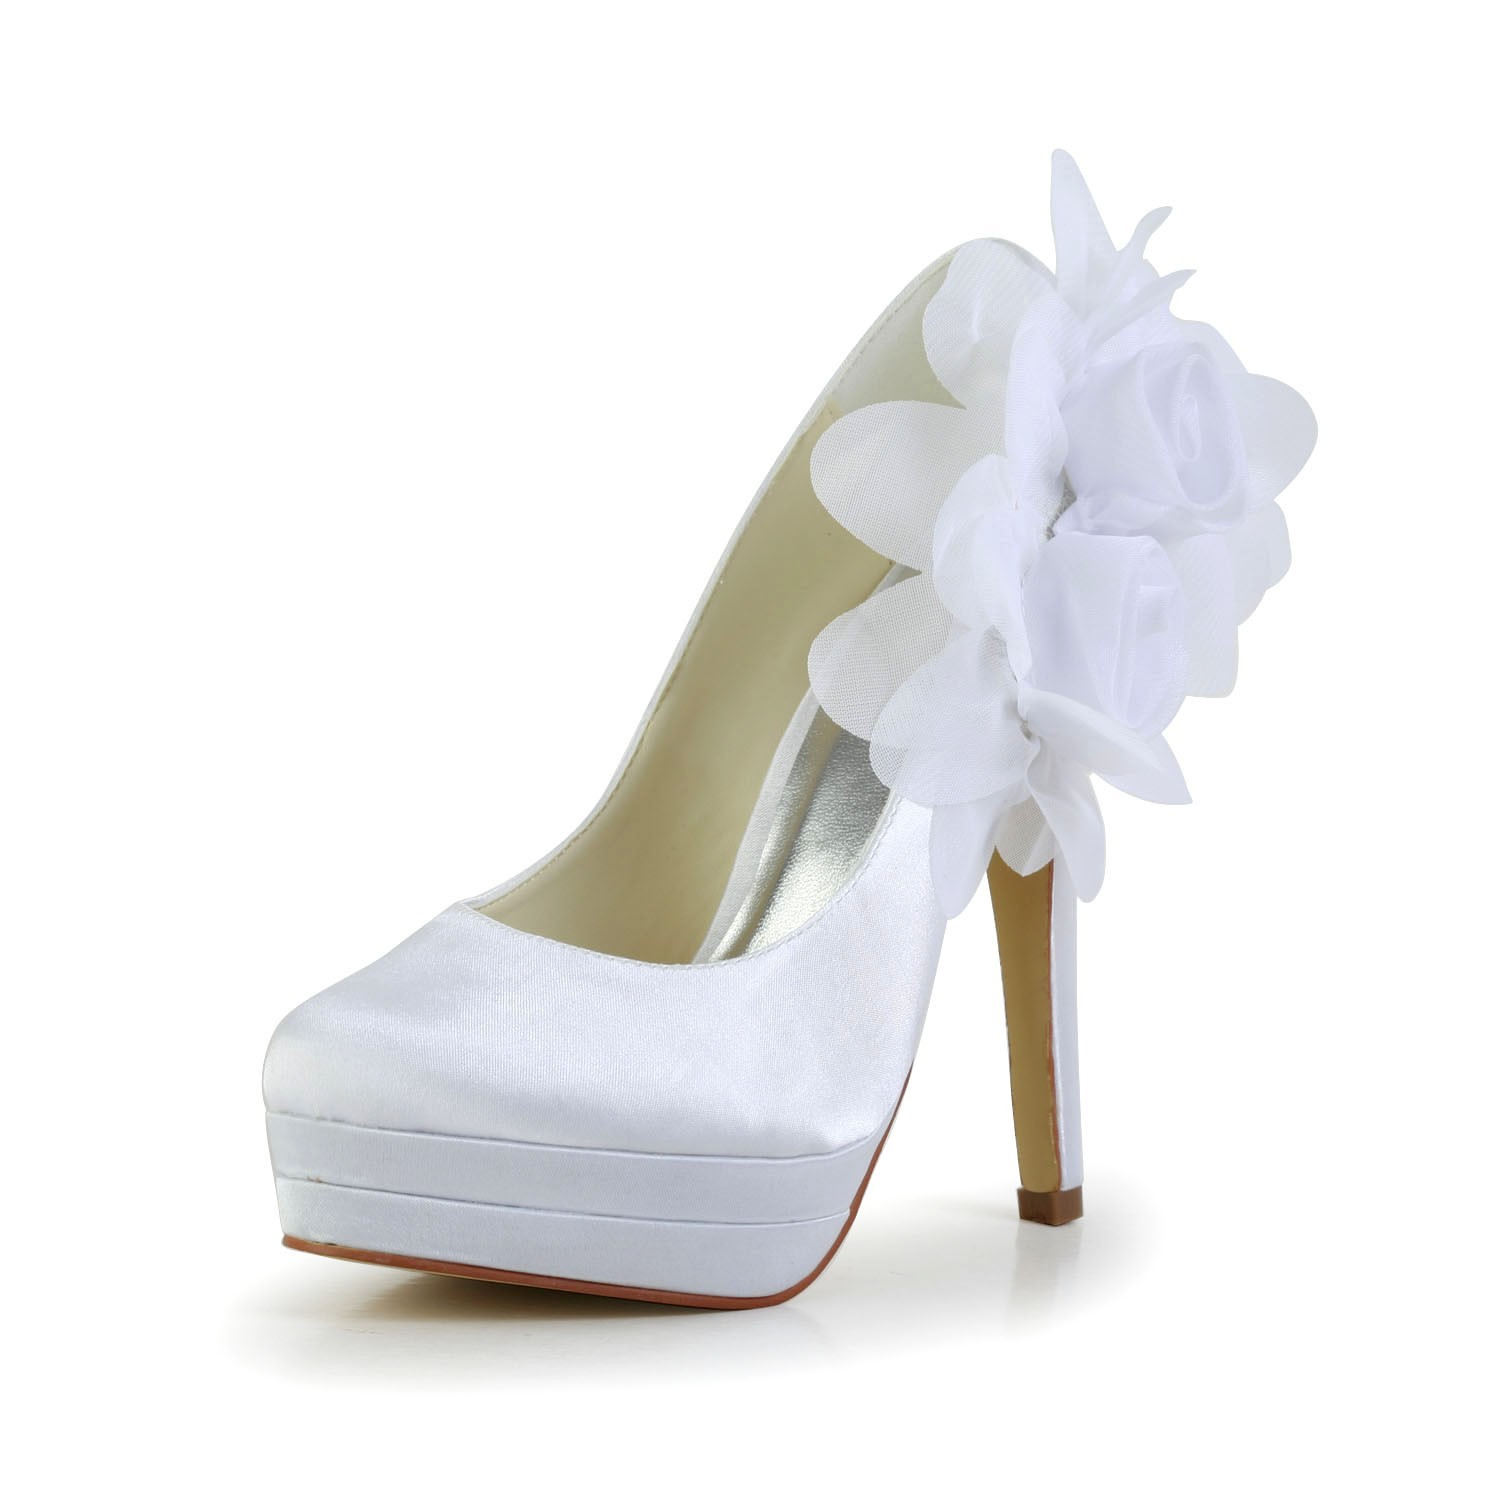 Women's Satin Stiletto Heel Closed Toe Platform Pumps White Wedding Shoes With Satin Flower